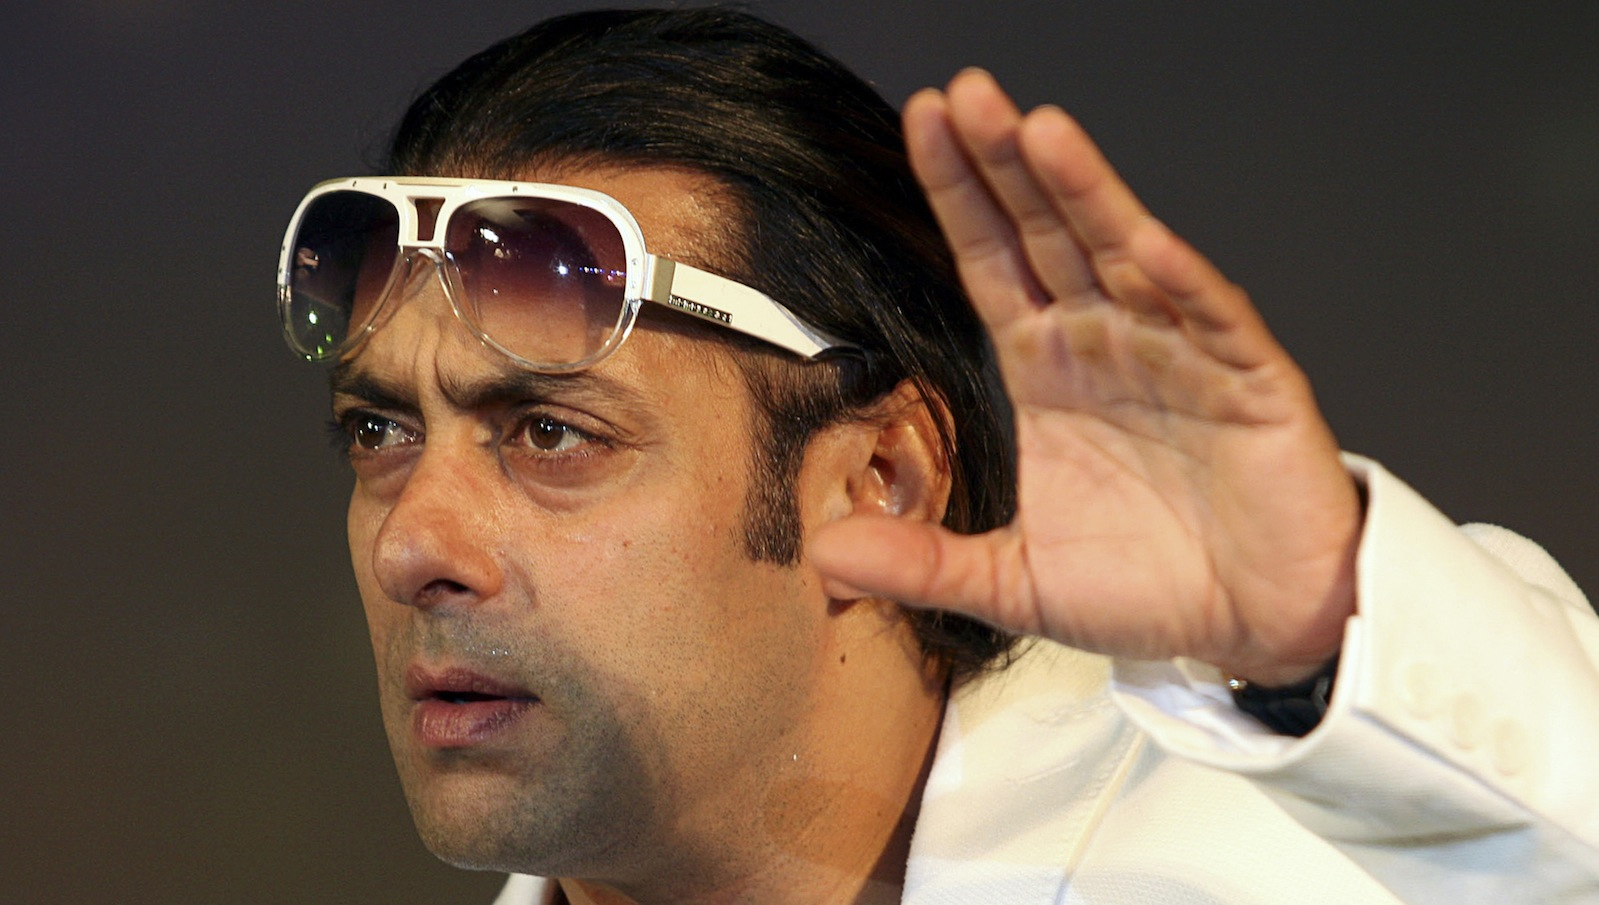 Bollywood actor Salman Khan speaks to the media at the launch of the second season of TV quiz show Dus Ka Dum in Mumbai May 21, 2009.